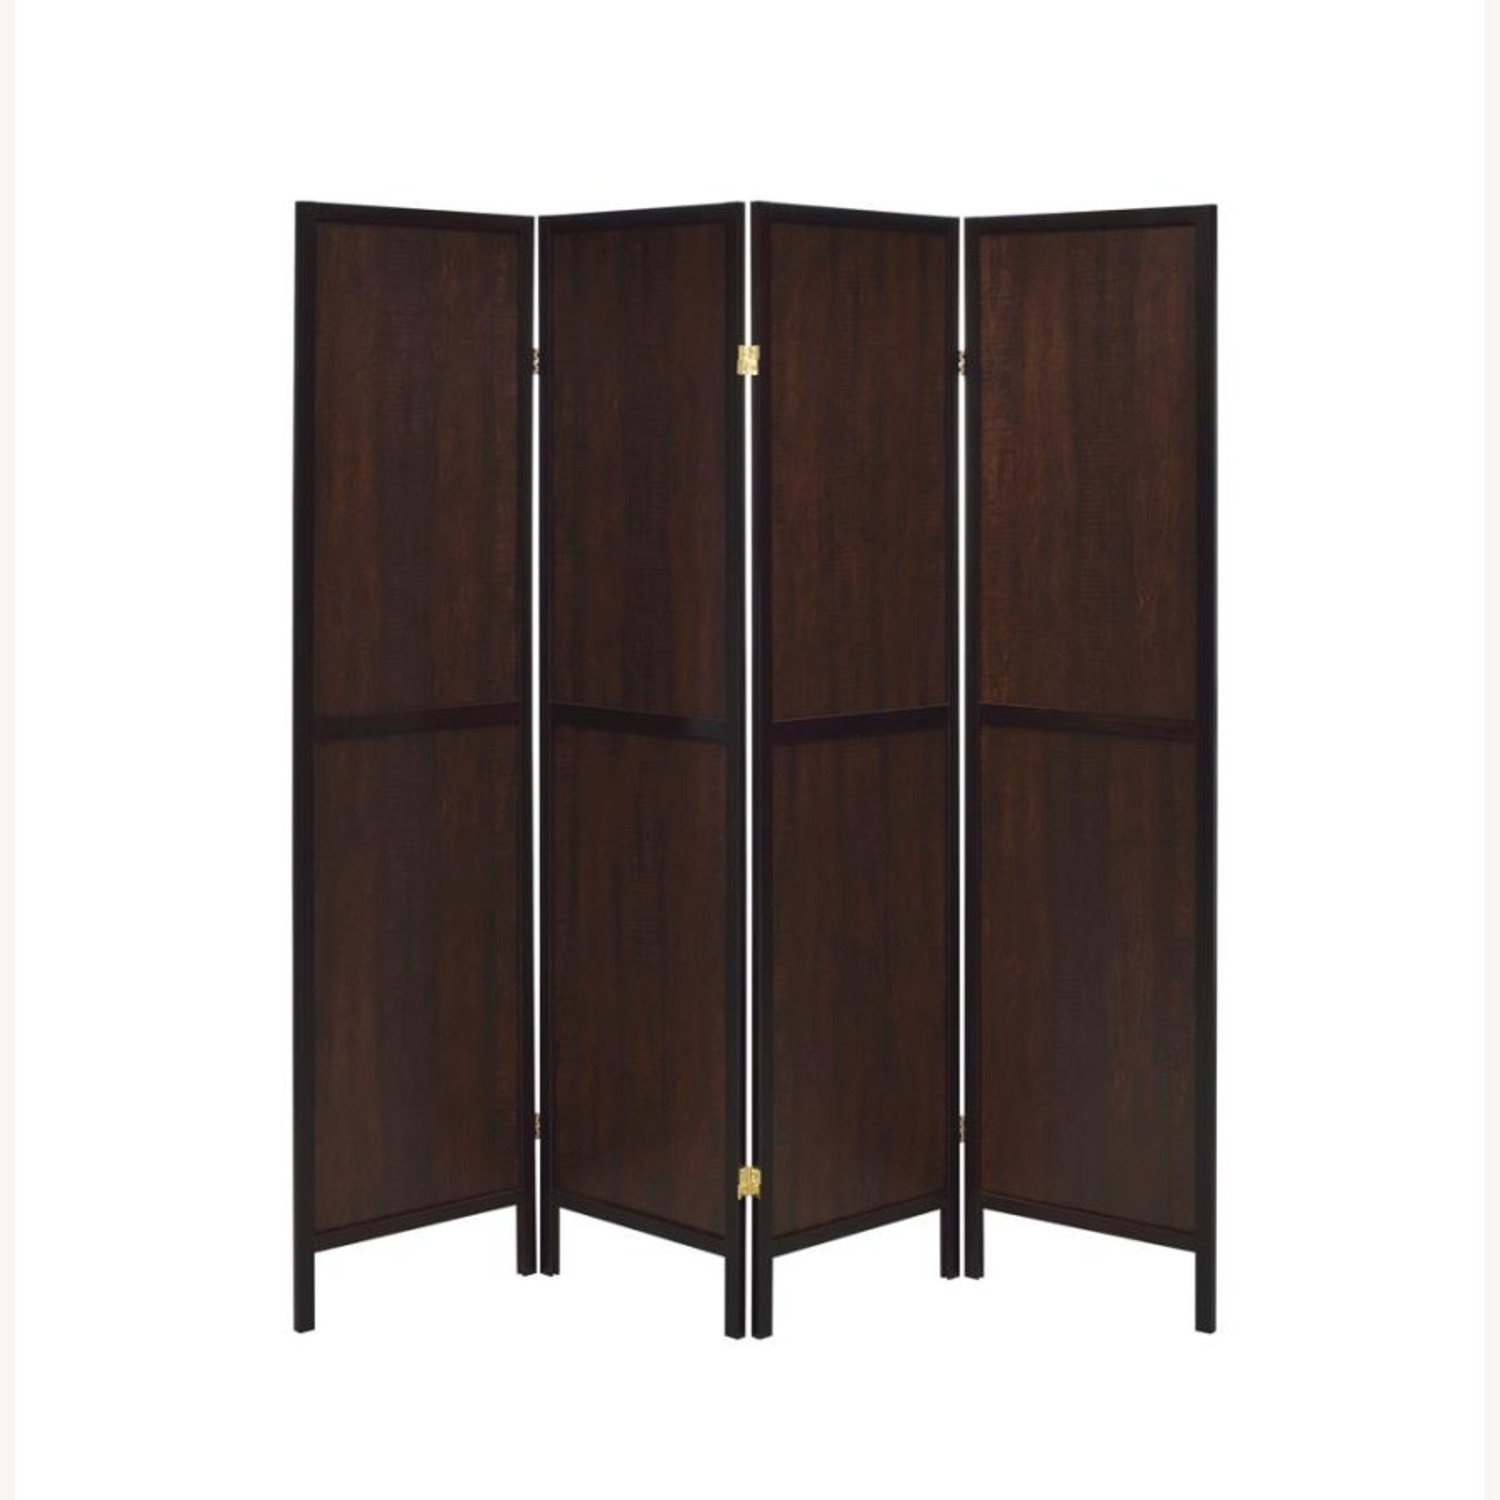 Panel Screen In Tobacco Finish & Cappuccino Frame - image-3